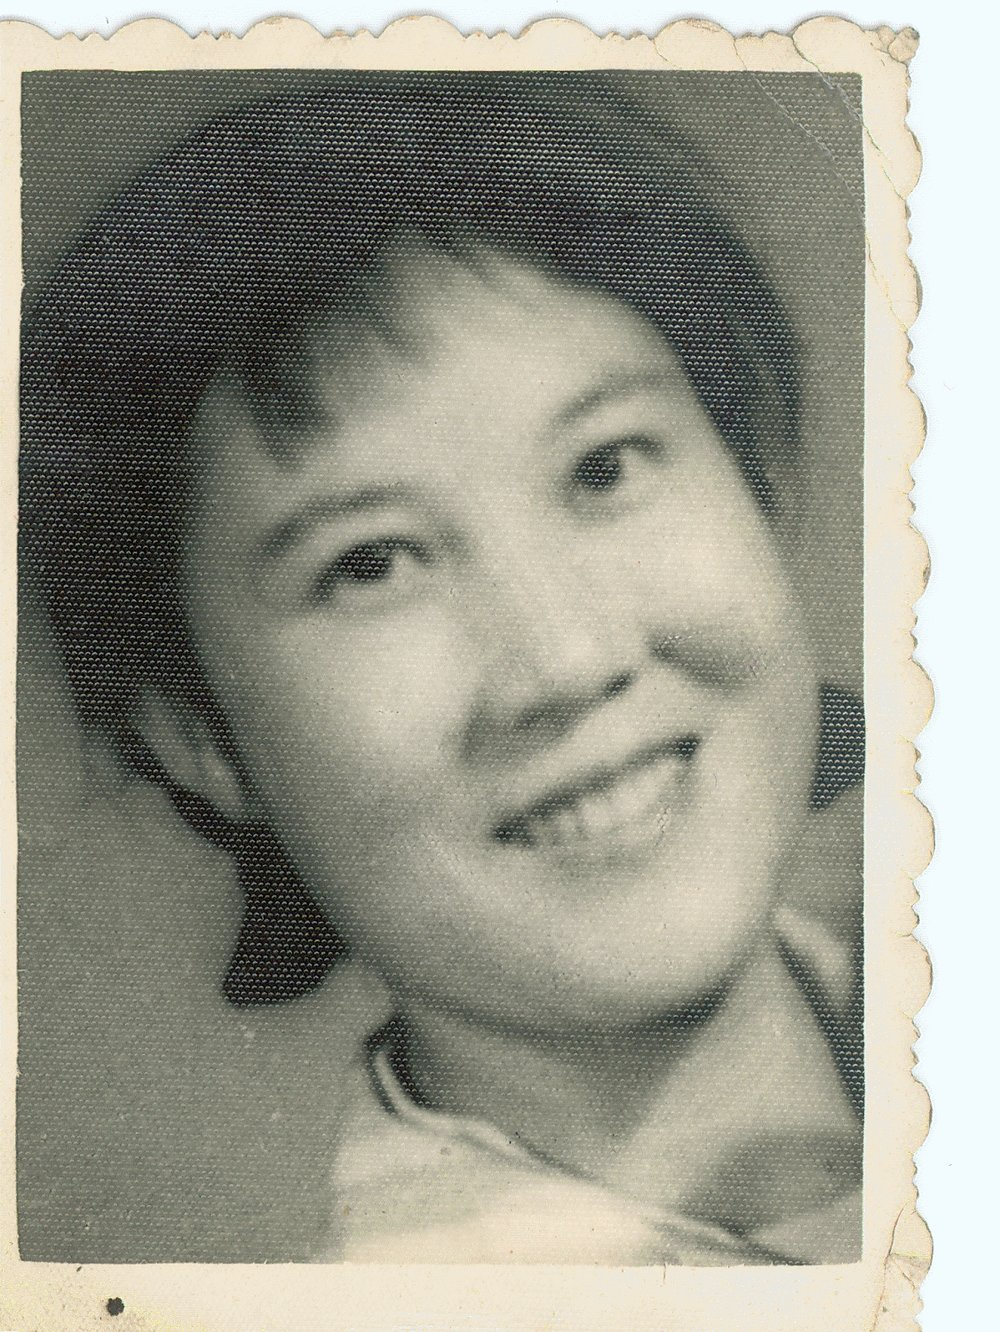 My mother when she was young. 母親年輕時。